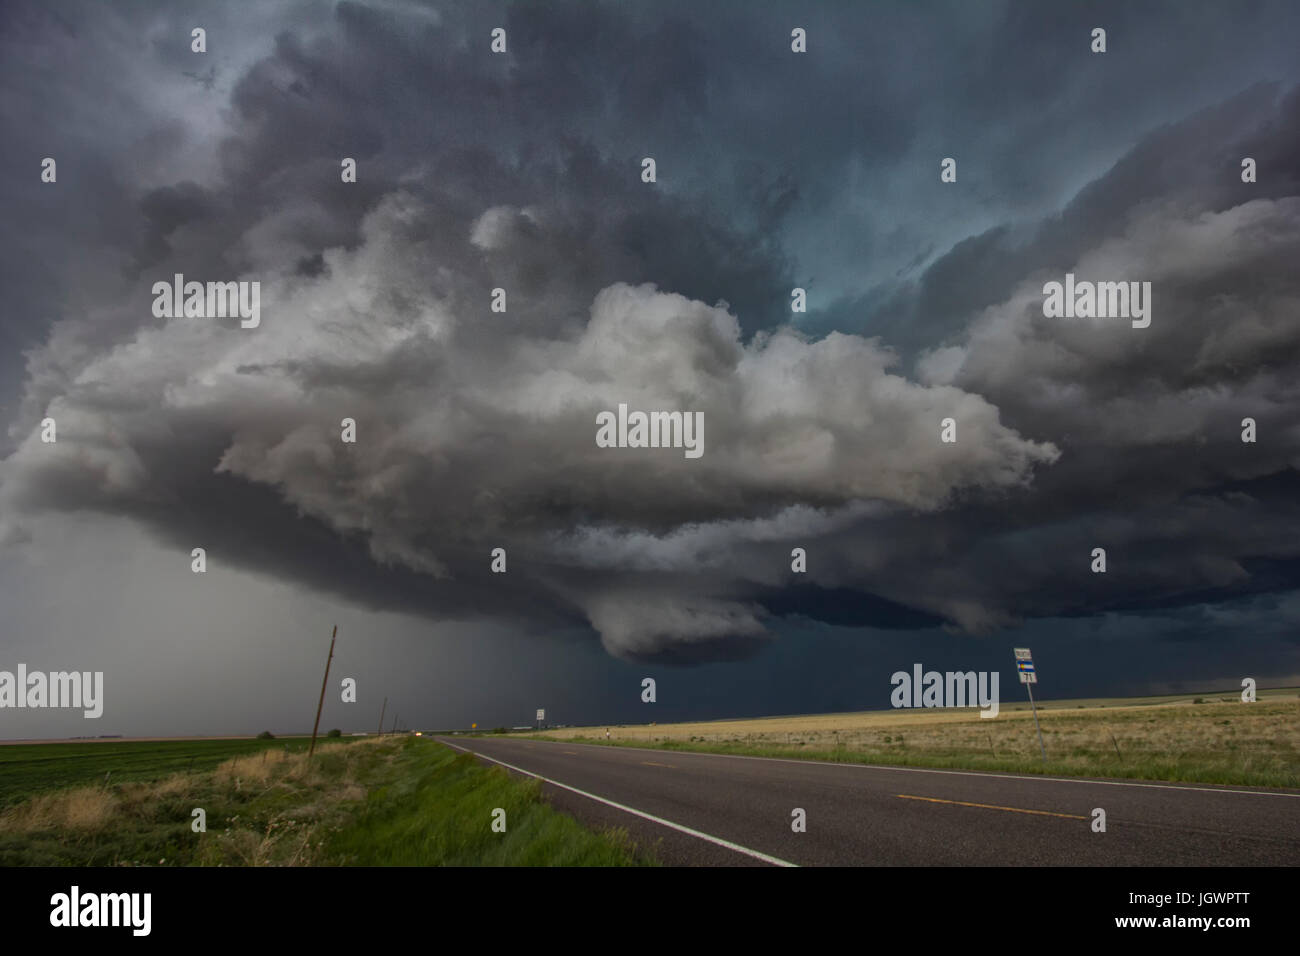 Rotating clouds over rural area, Cope, Colorado, United States, North America - Stock Image